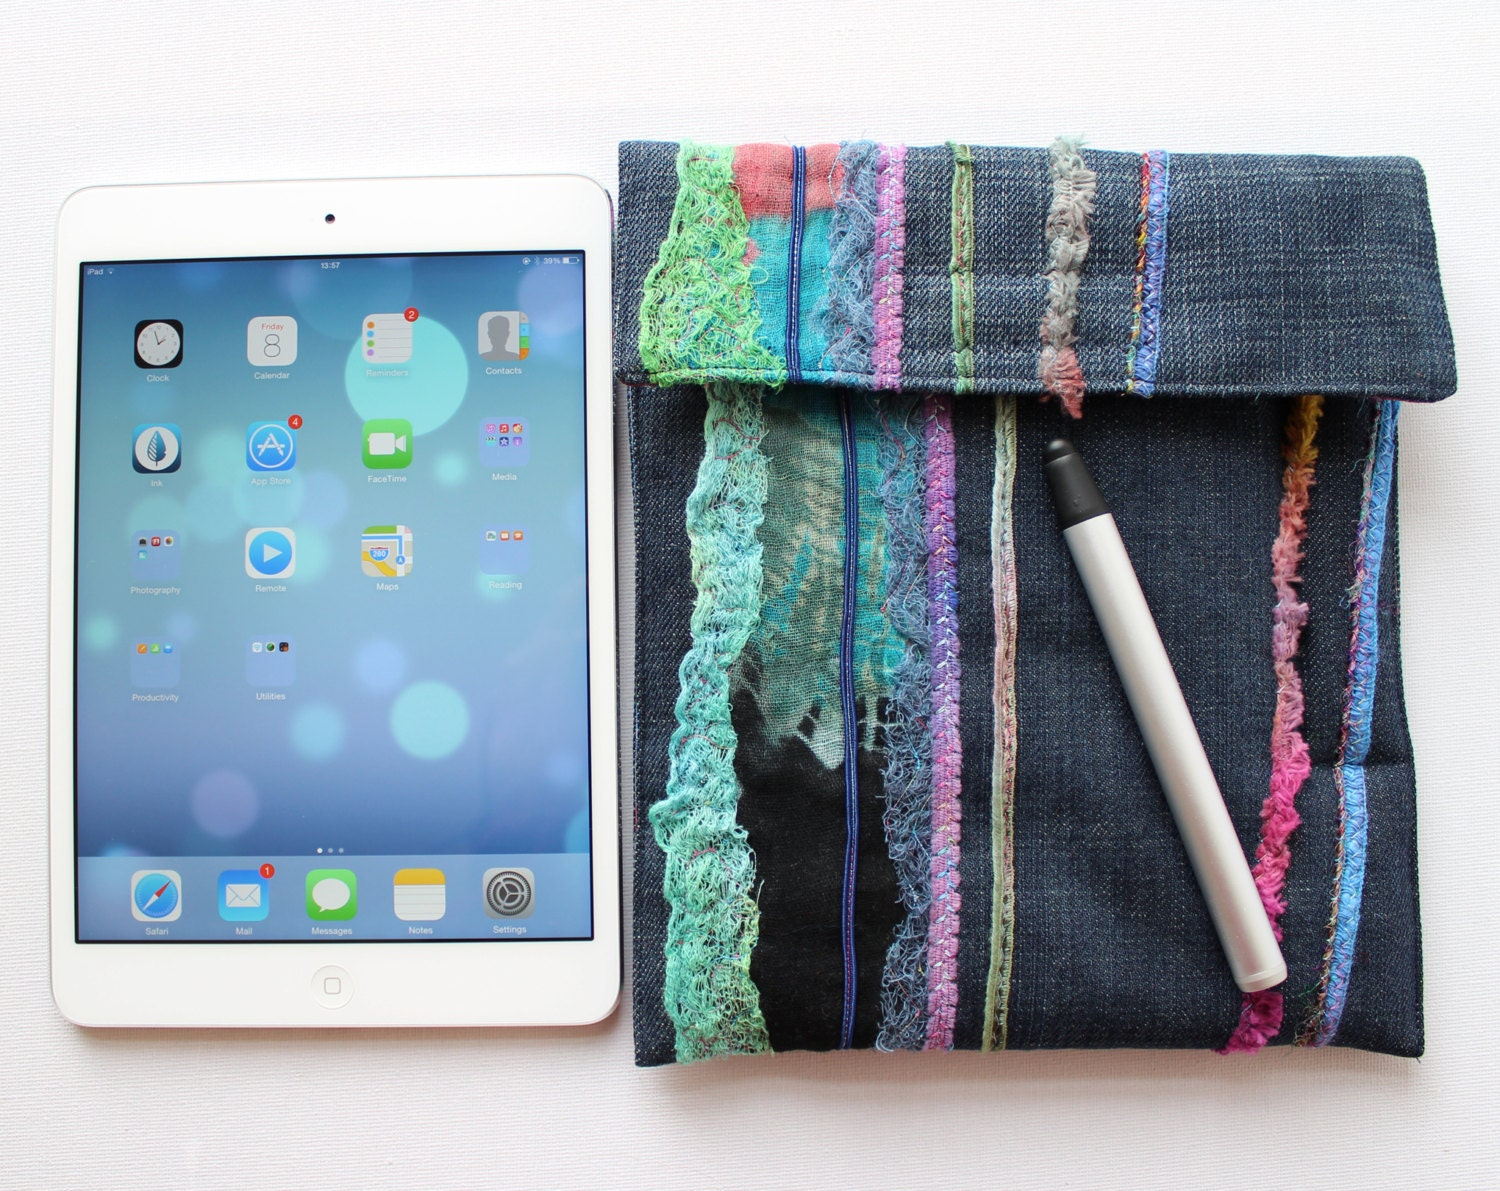 Rainforest iPad mini Case with Stylus Pocket  Denim Padded iPad mini Cover with Embroidered Patterns